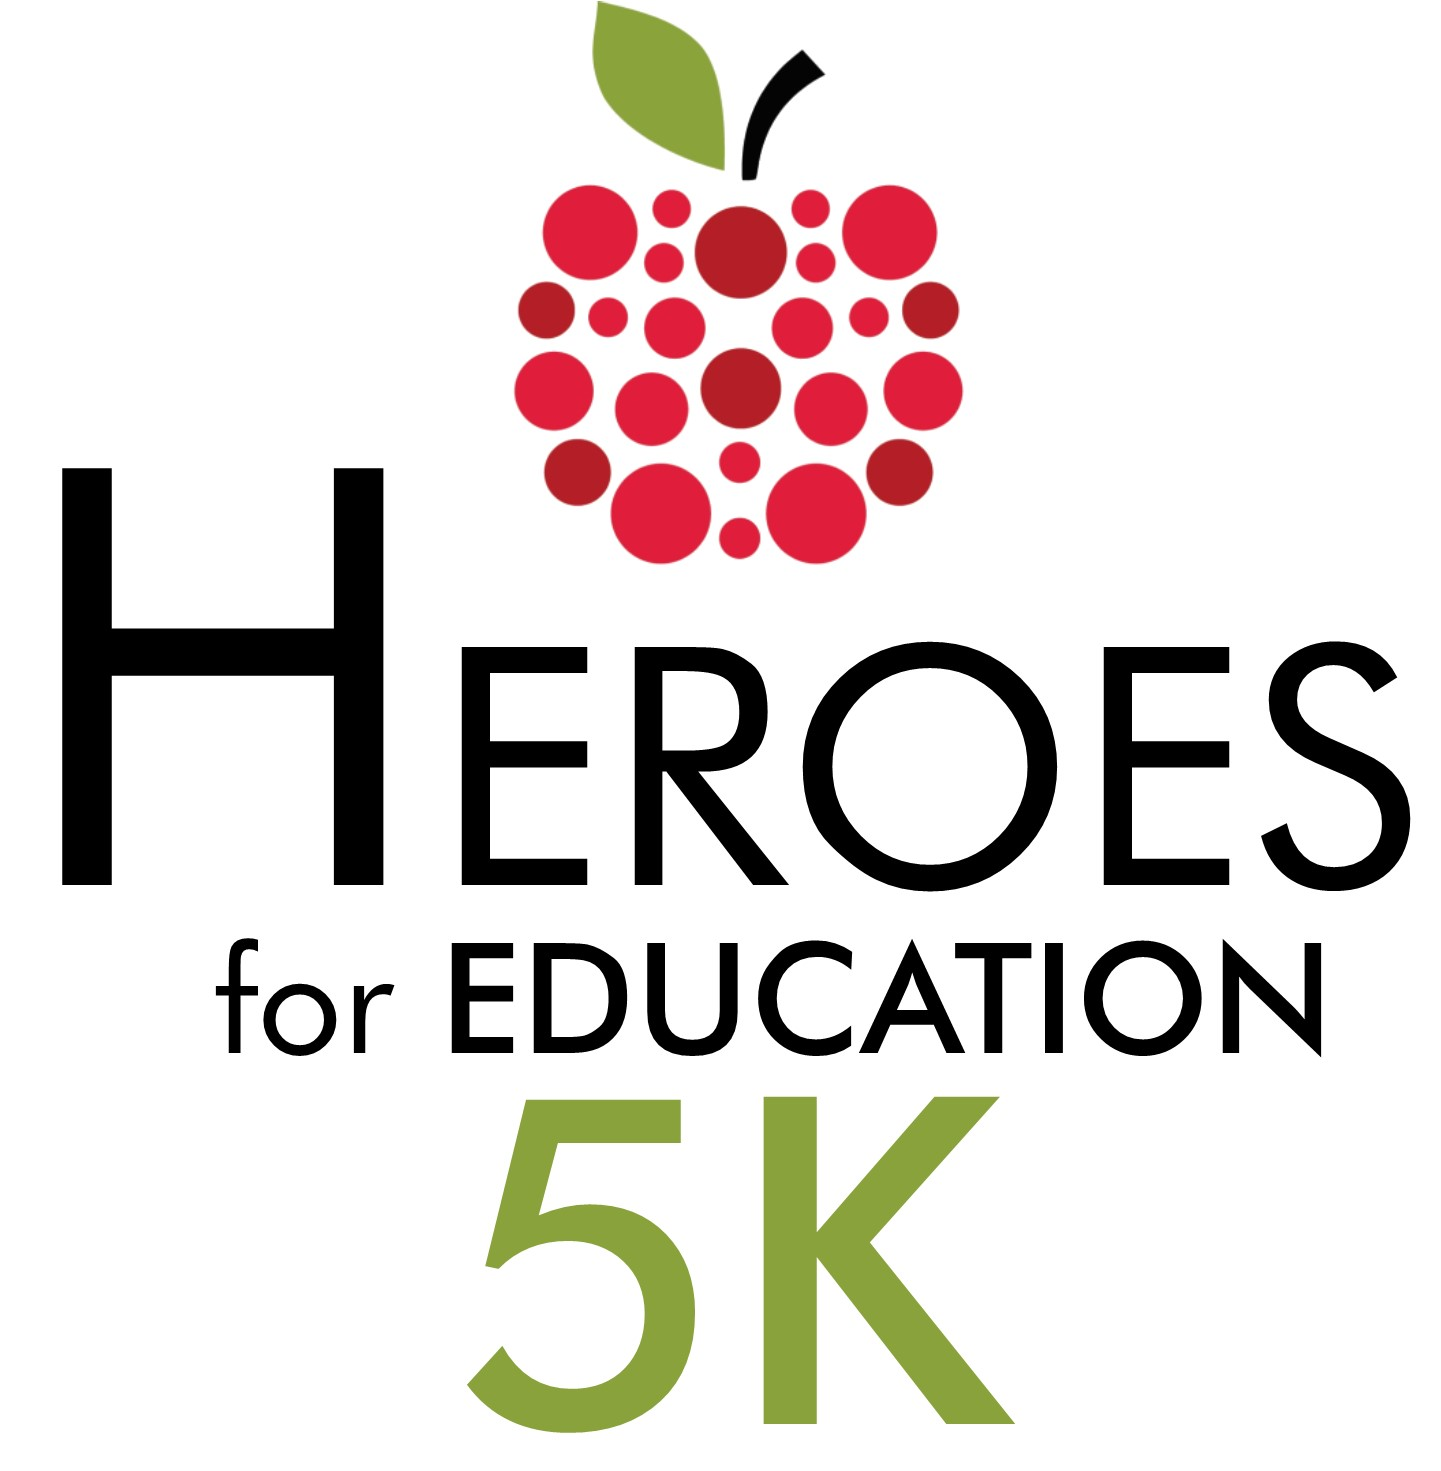 Heroes for Education 2016 Logo